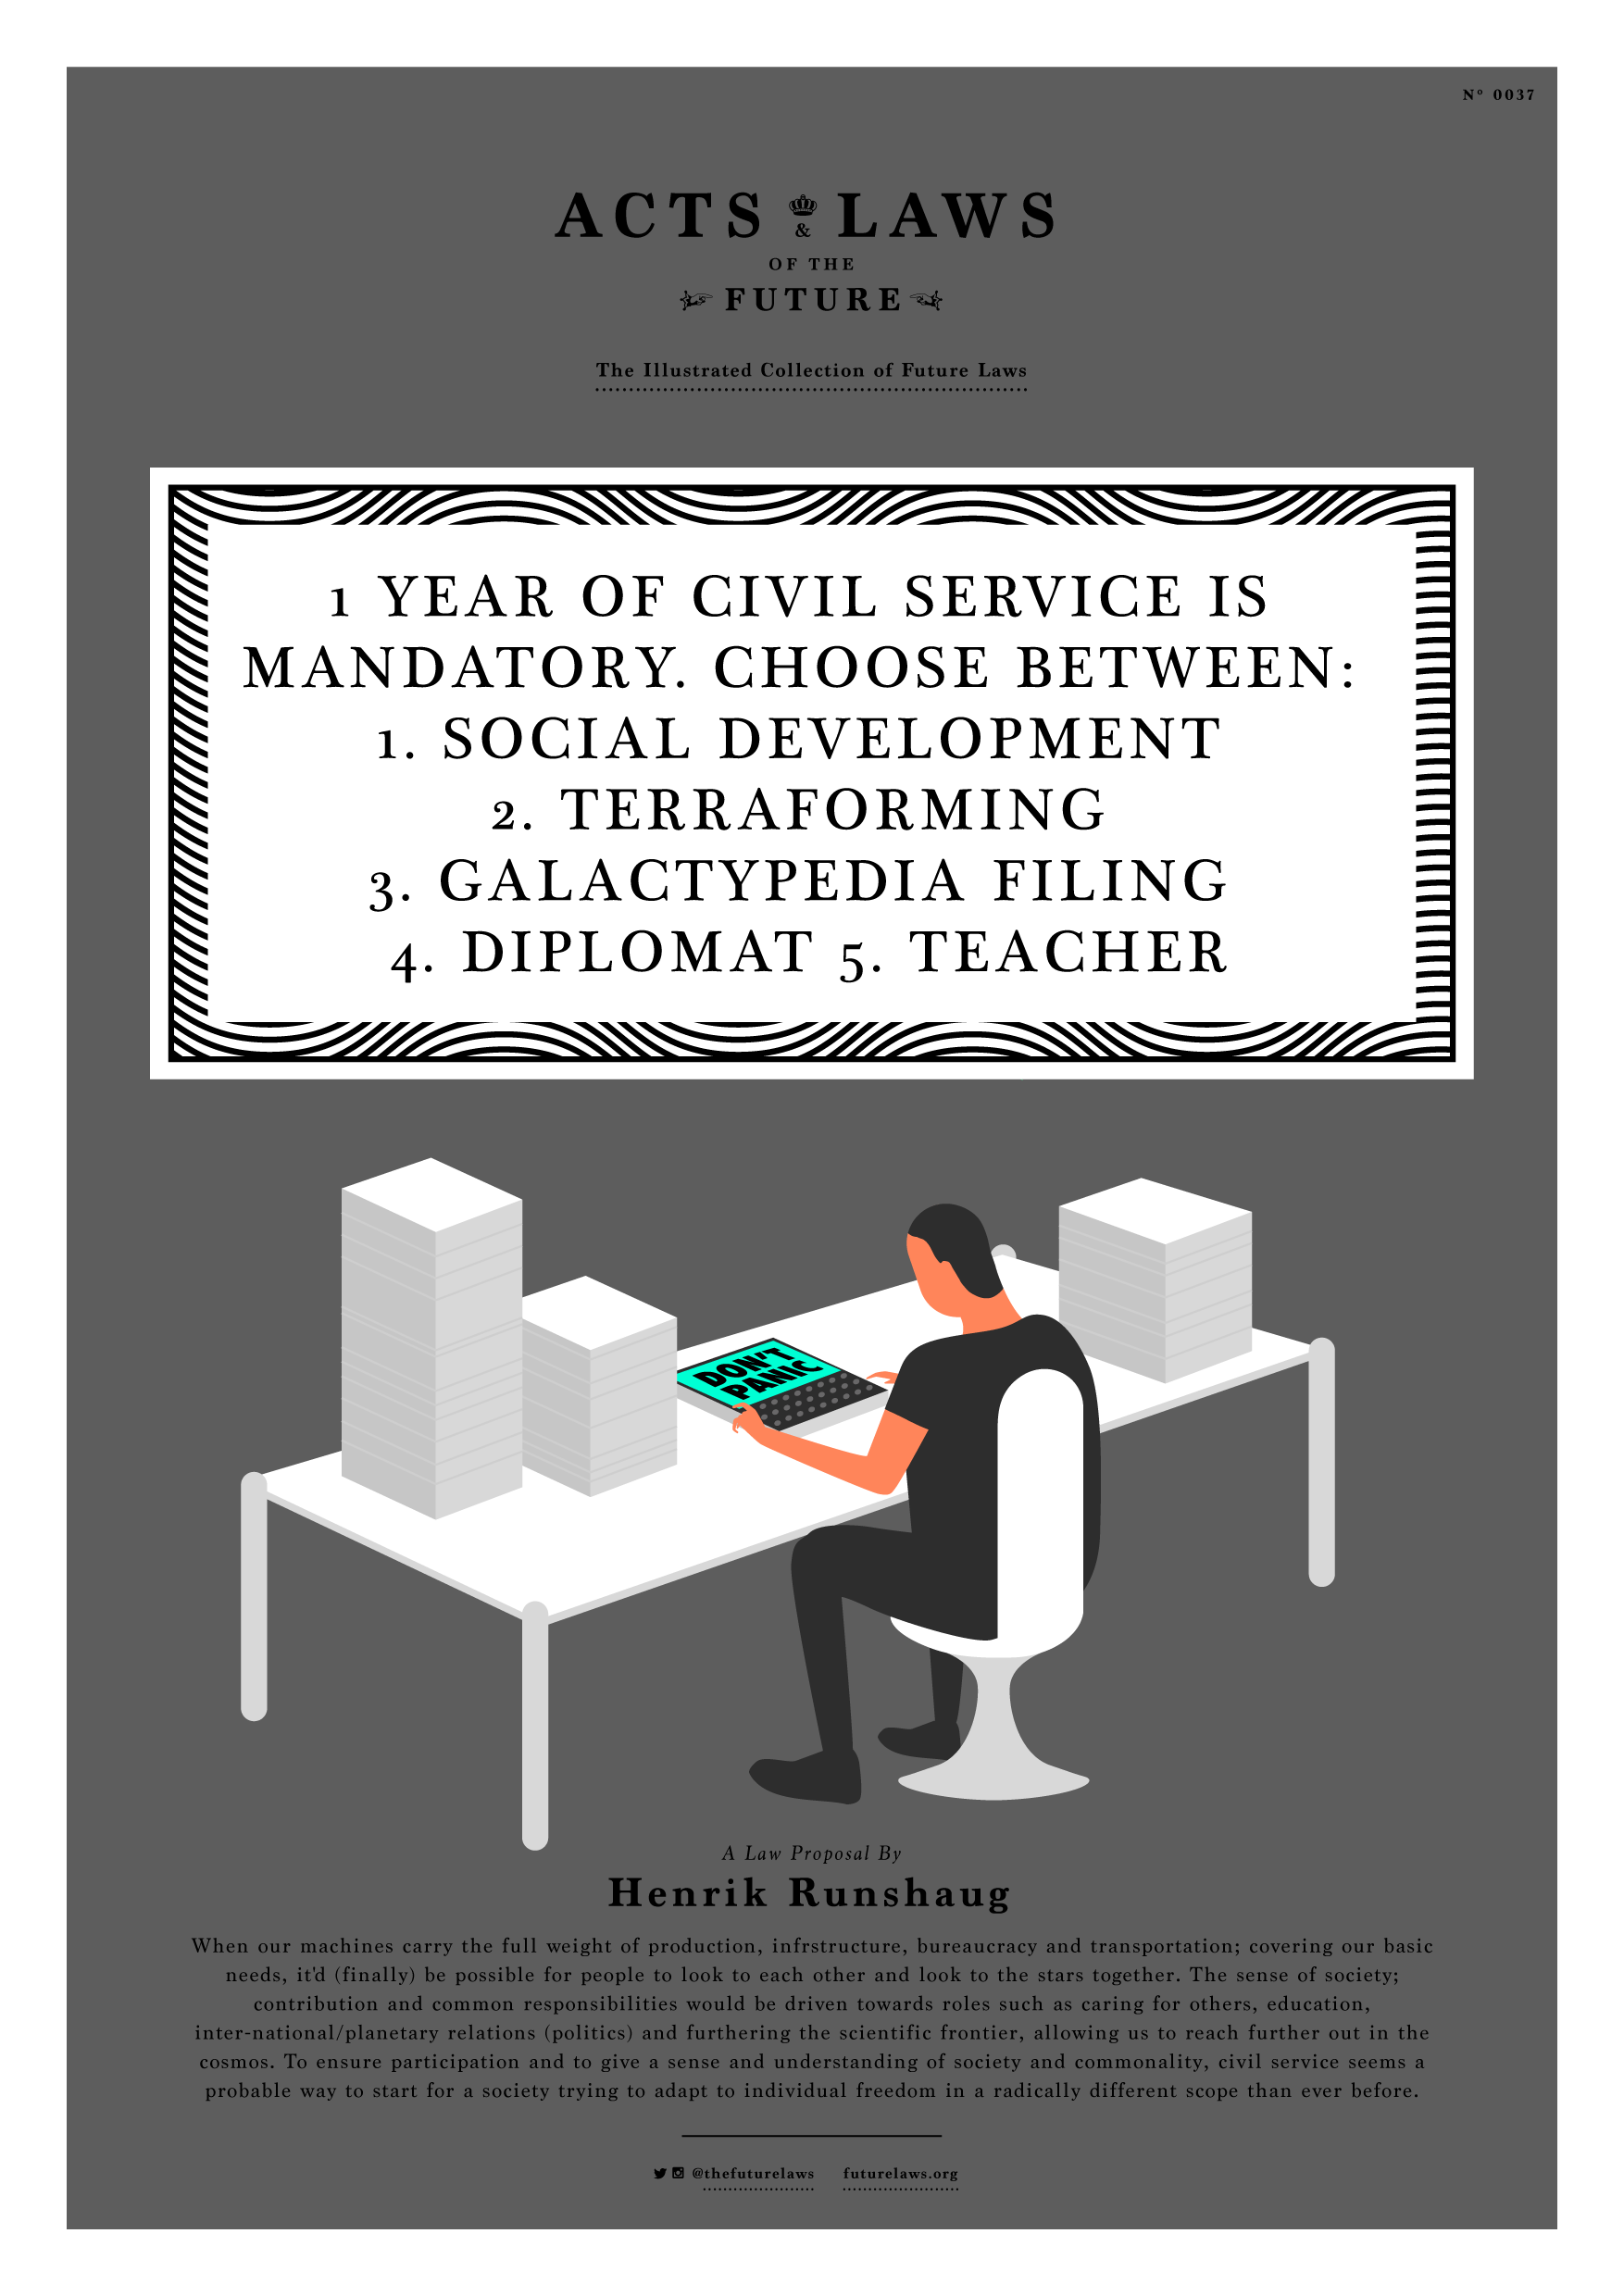 1 year of civil service is mandatory. Choose between: 1. Social development 2. Terraforming 3. Galactypedia filing 4. Diplomat 5. Teacher